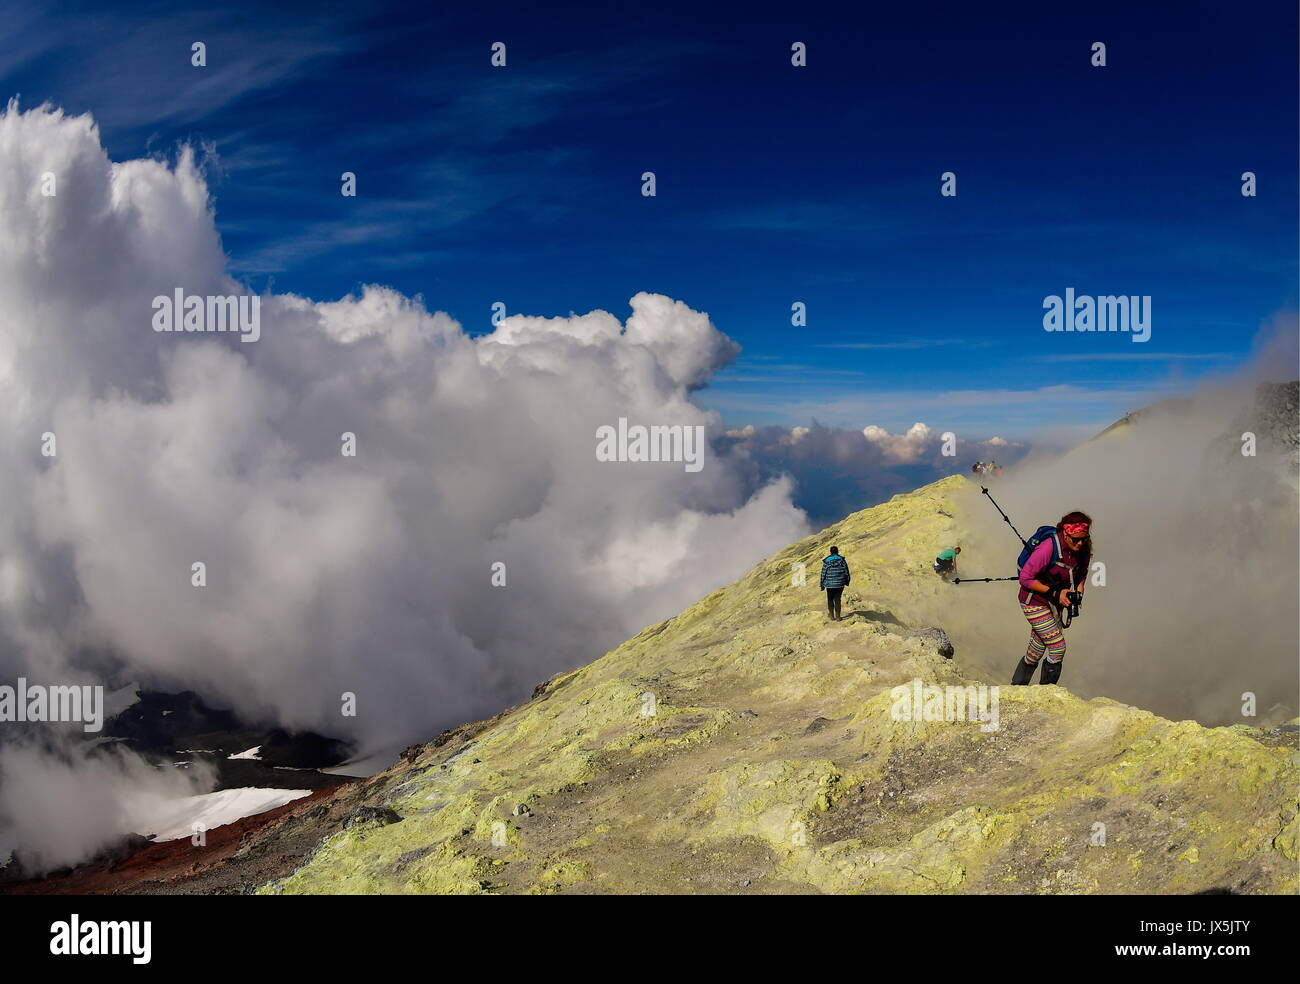 Kamchatka Territory, Russia. 12th Aug, 2017. Tourists at the crater of Avachinsky active stratovolcano. Credit: - Stock Image